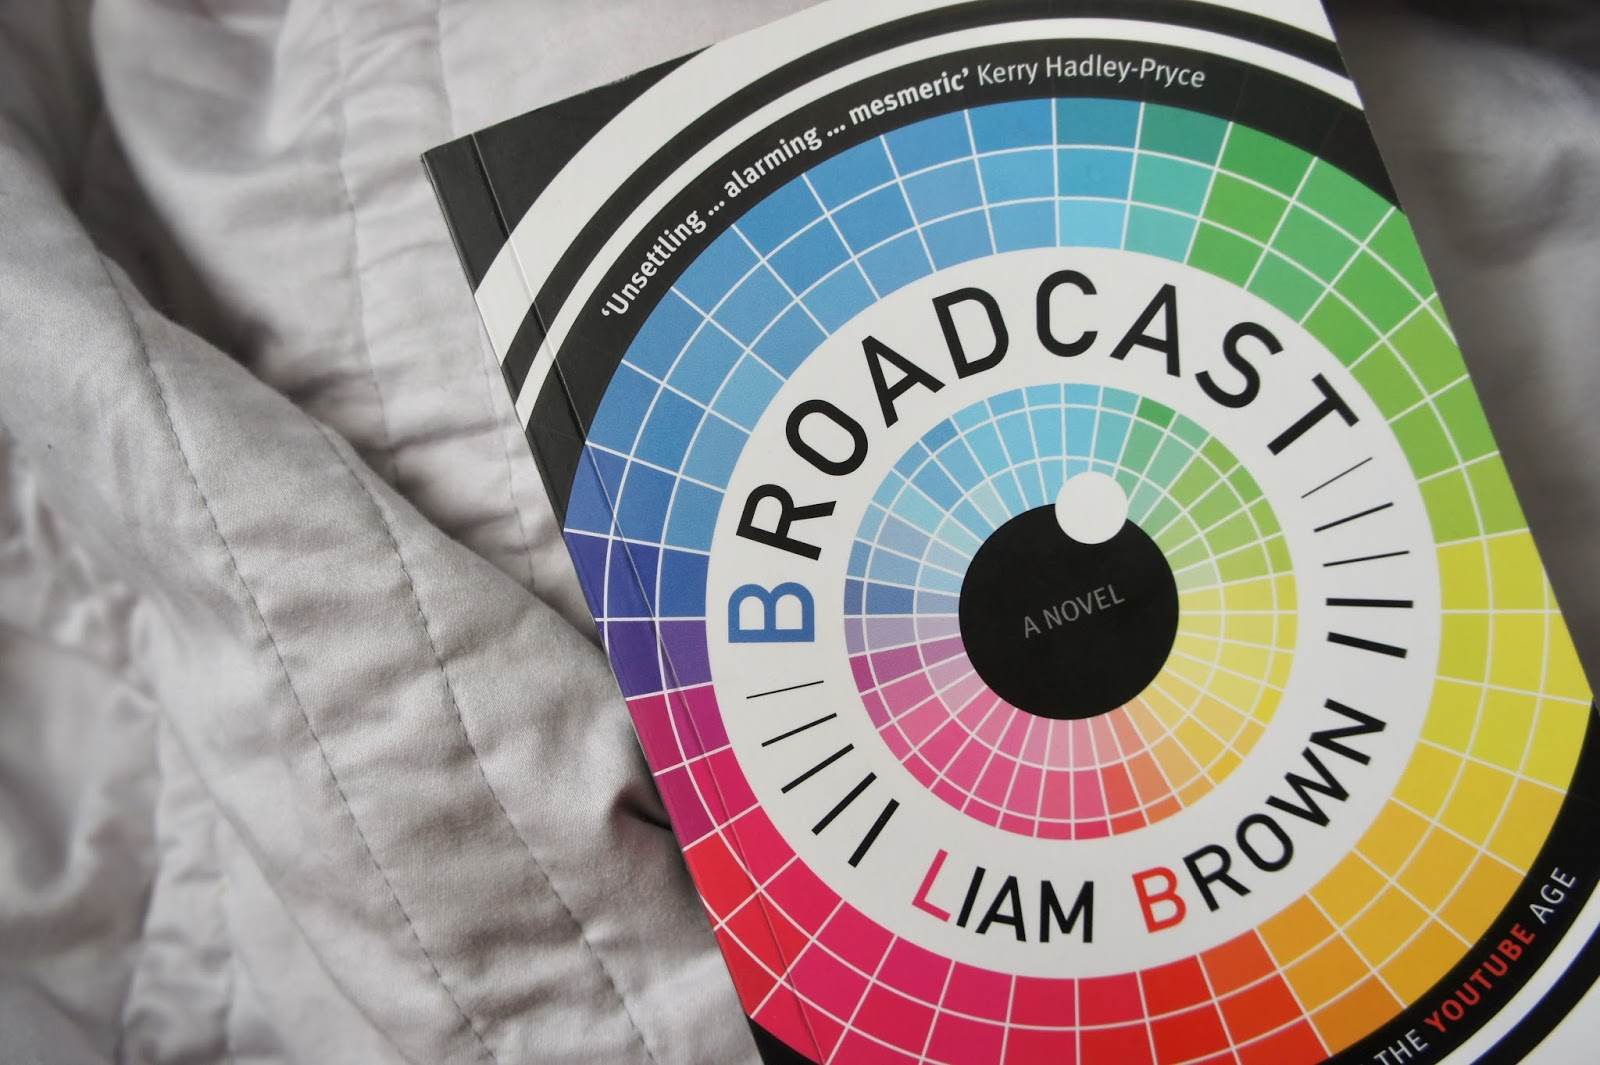 broadcast liam brown